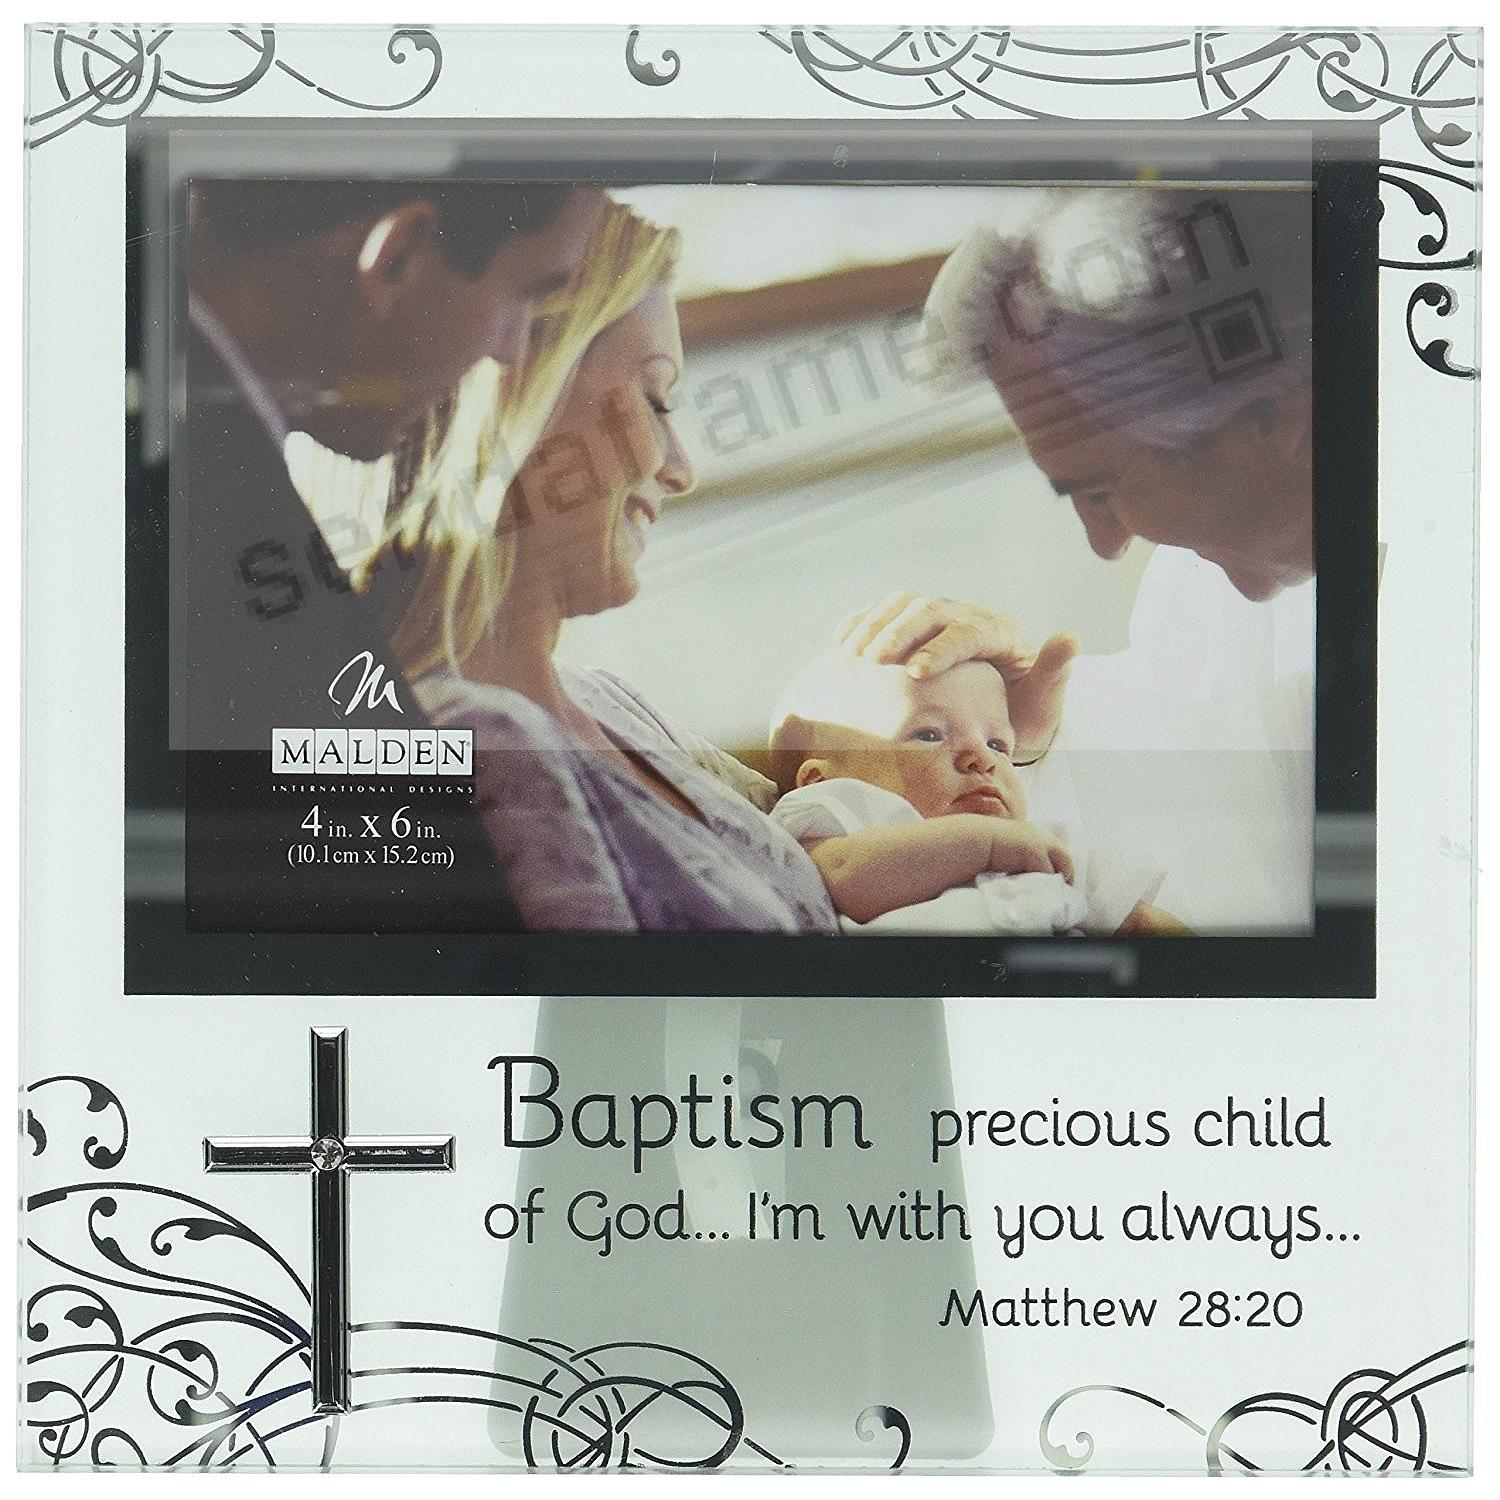 Baby's Baptism Special Etched Glass Celebration frame